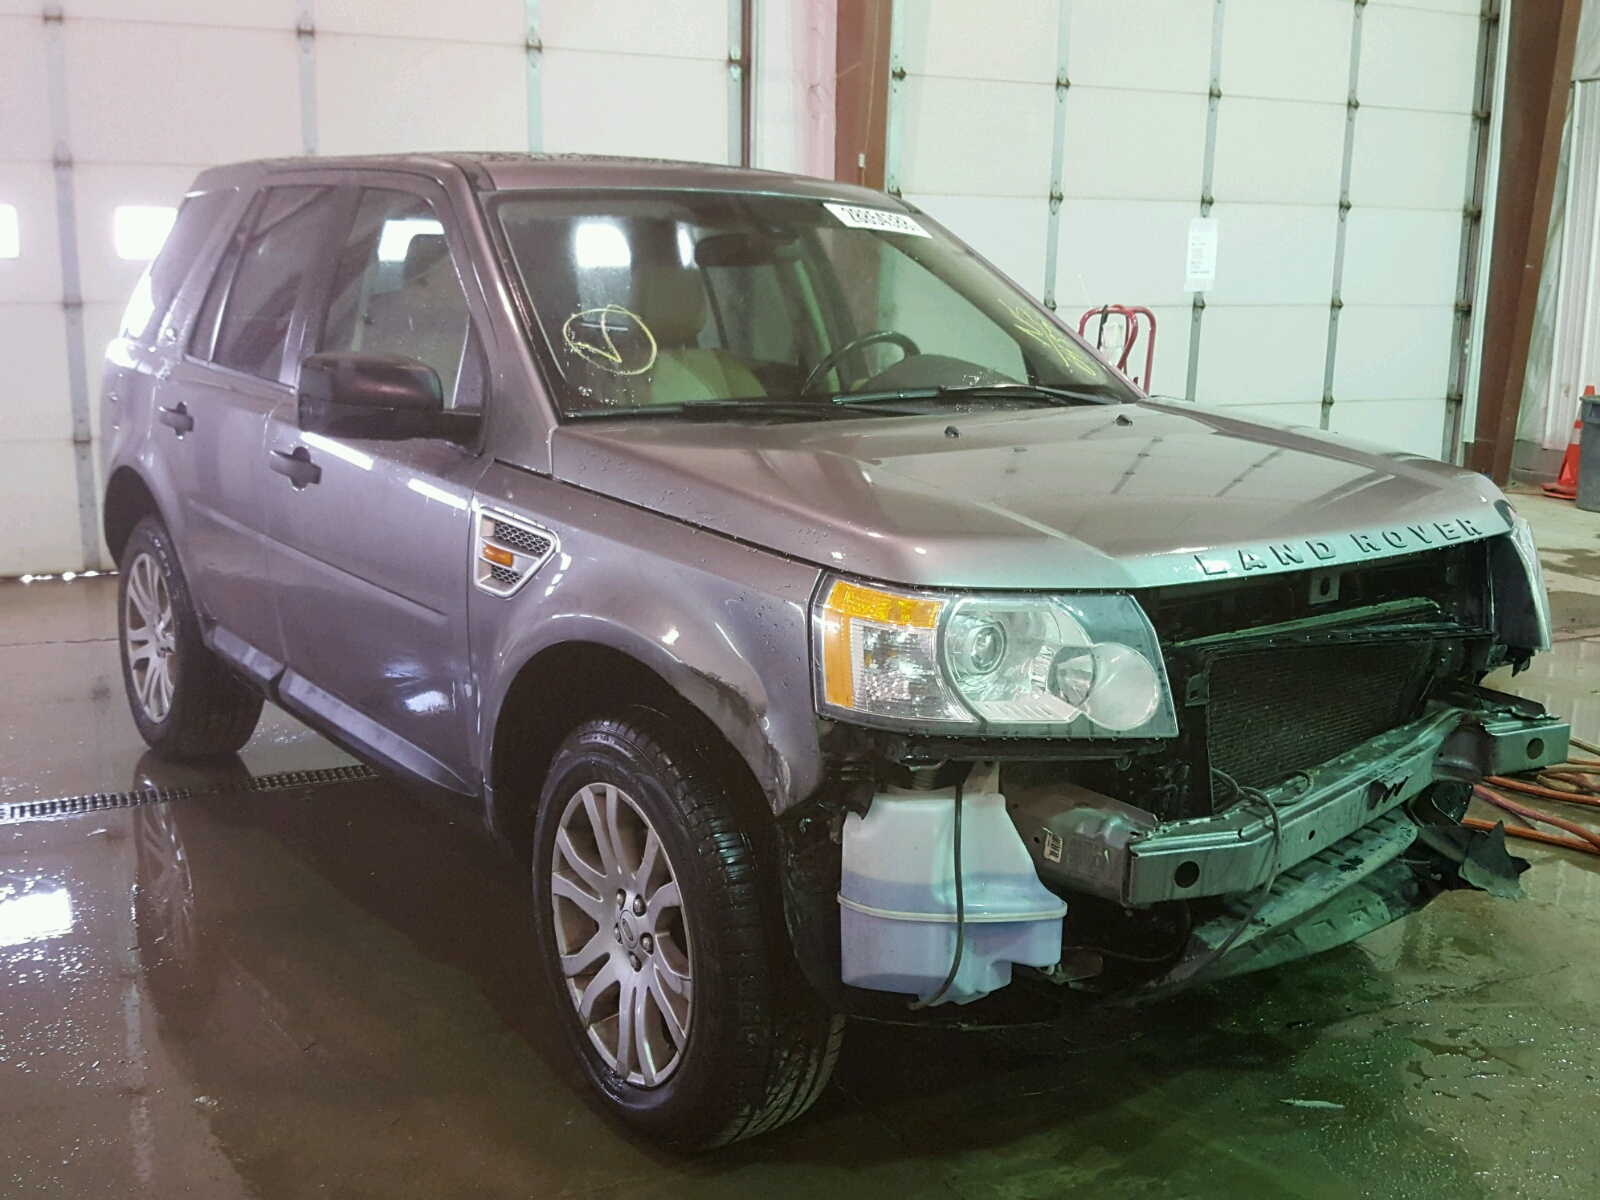 ar technology in rover awd hse sale tec cabot package land w landrover for veh suv